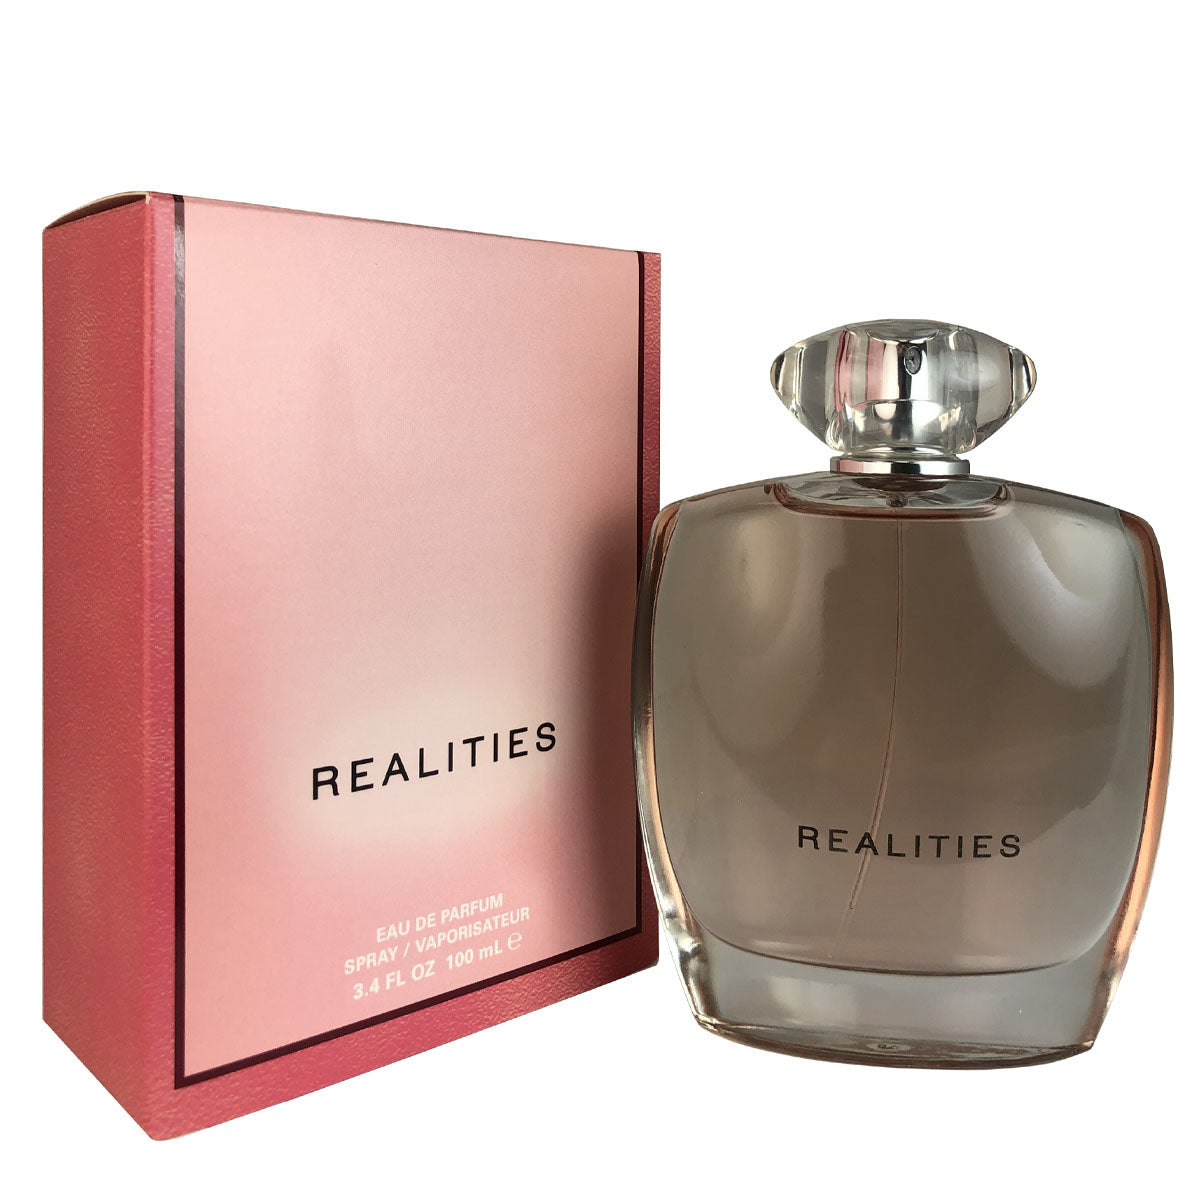 Realities for Women by Liz Claiborne 3.4 oz Eau de Parfum Spray